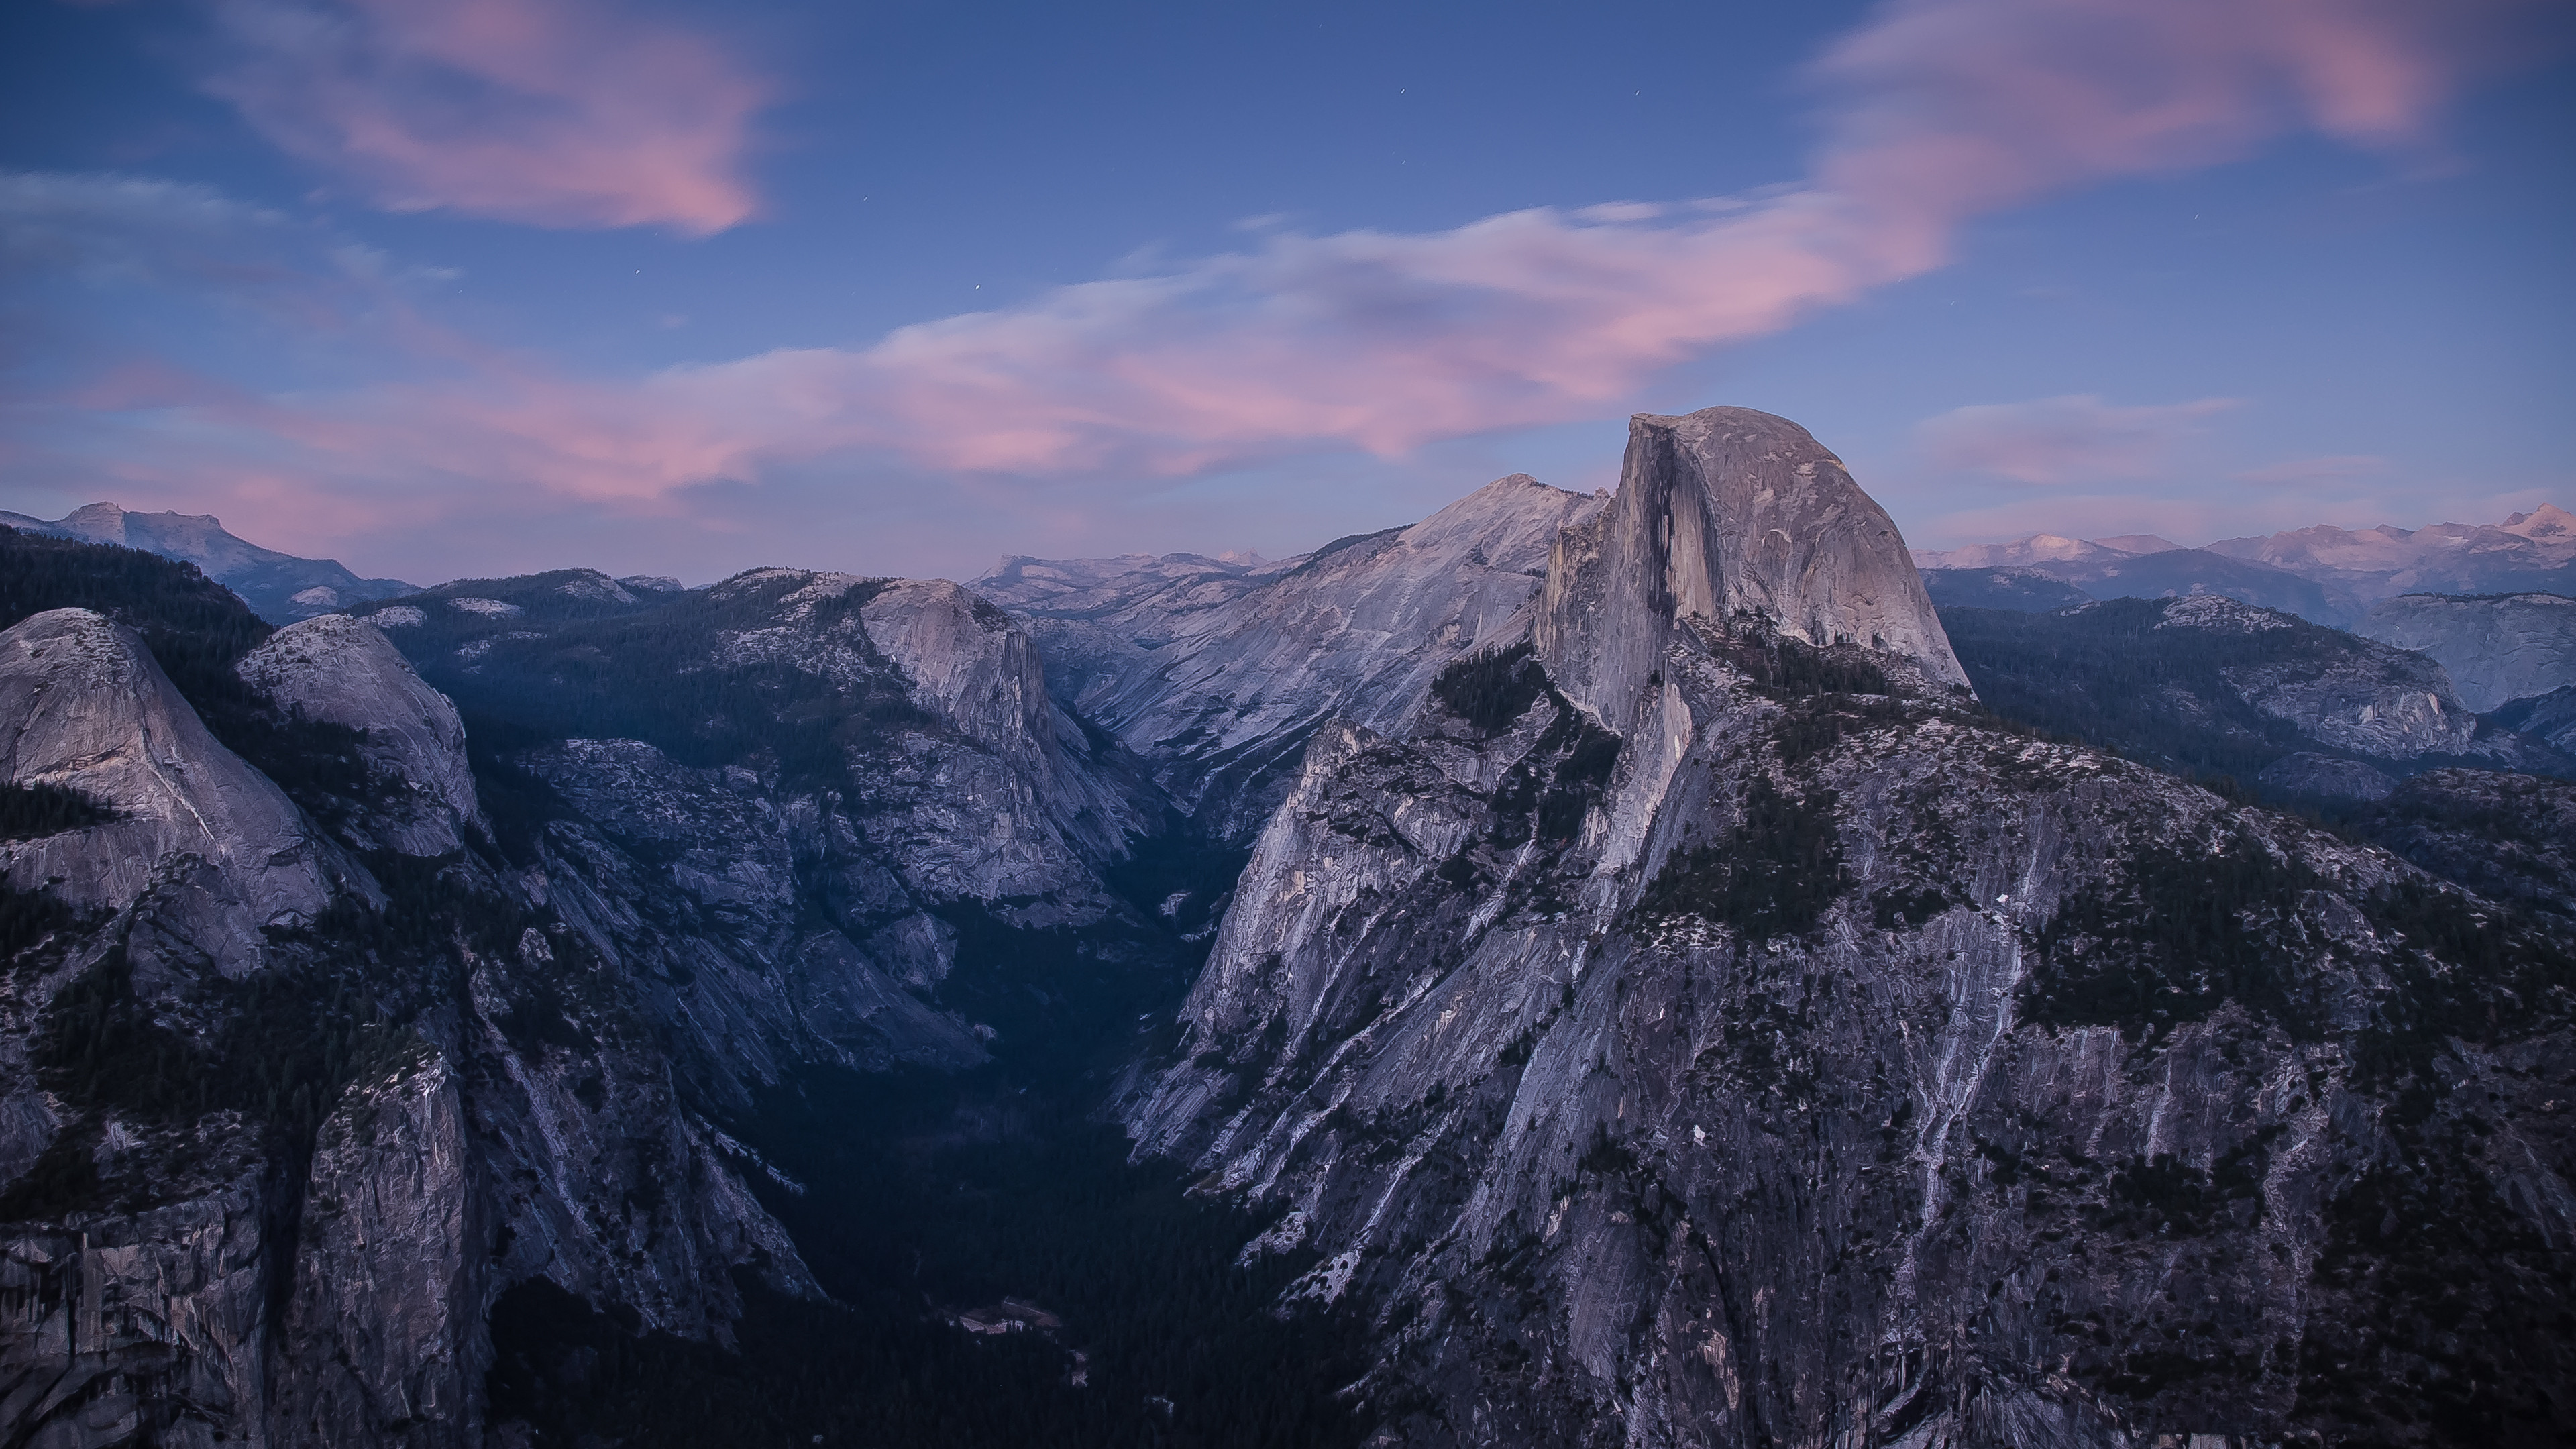 Mac Os Yosemite Wallpapers 57 Images